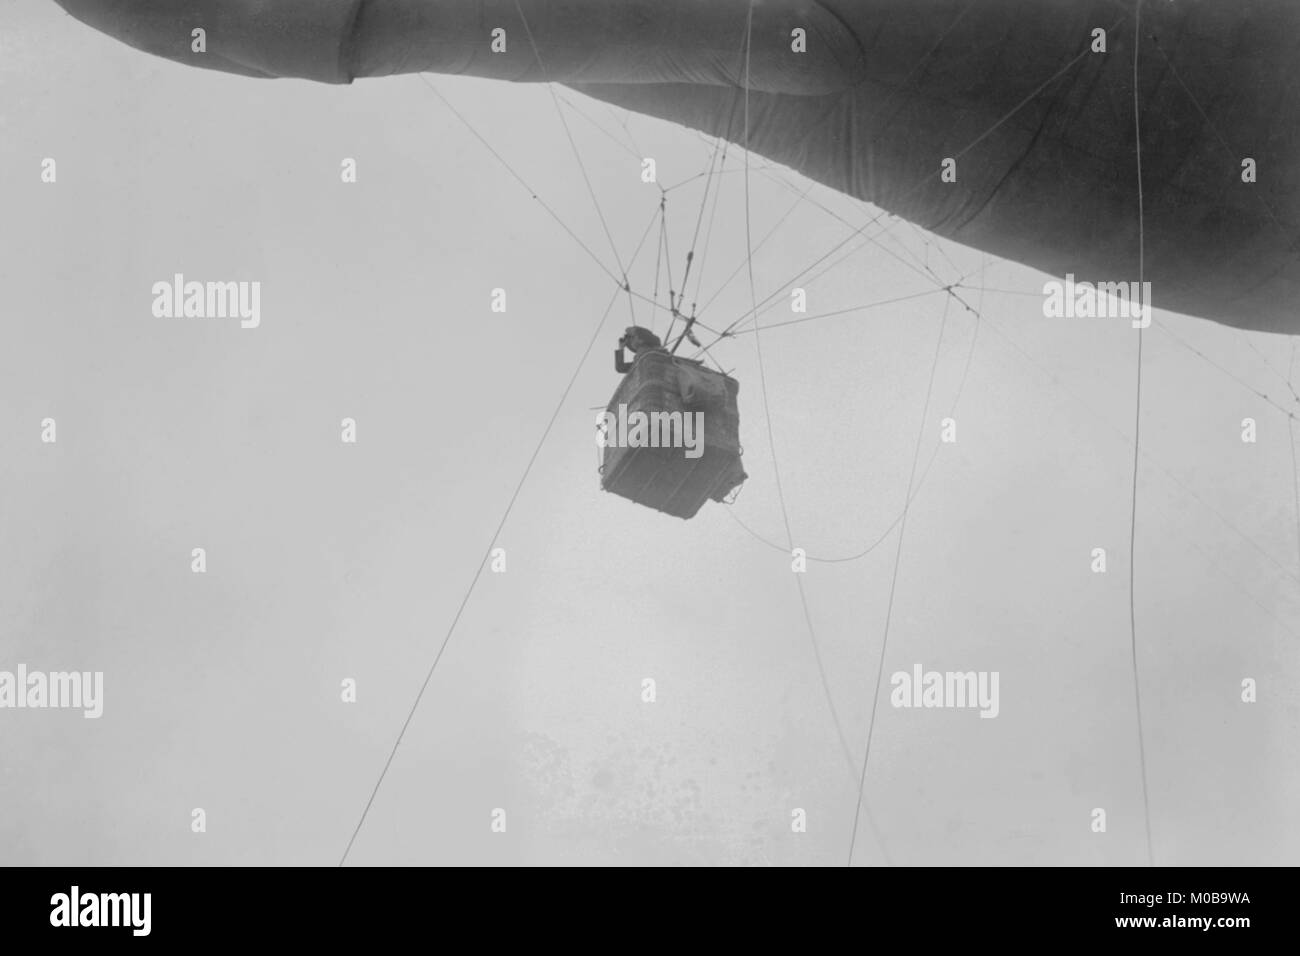 Military Observer hangs from a Balloon by guide wires looking over battlefield - Stock Image